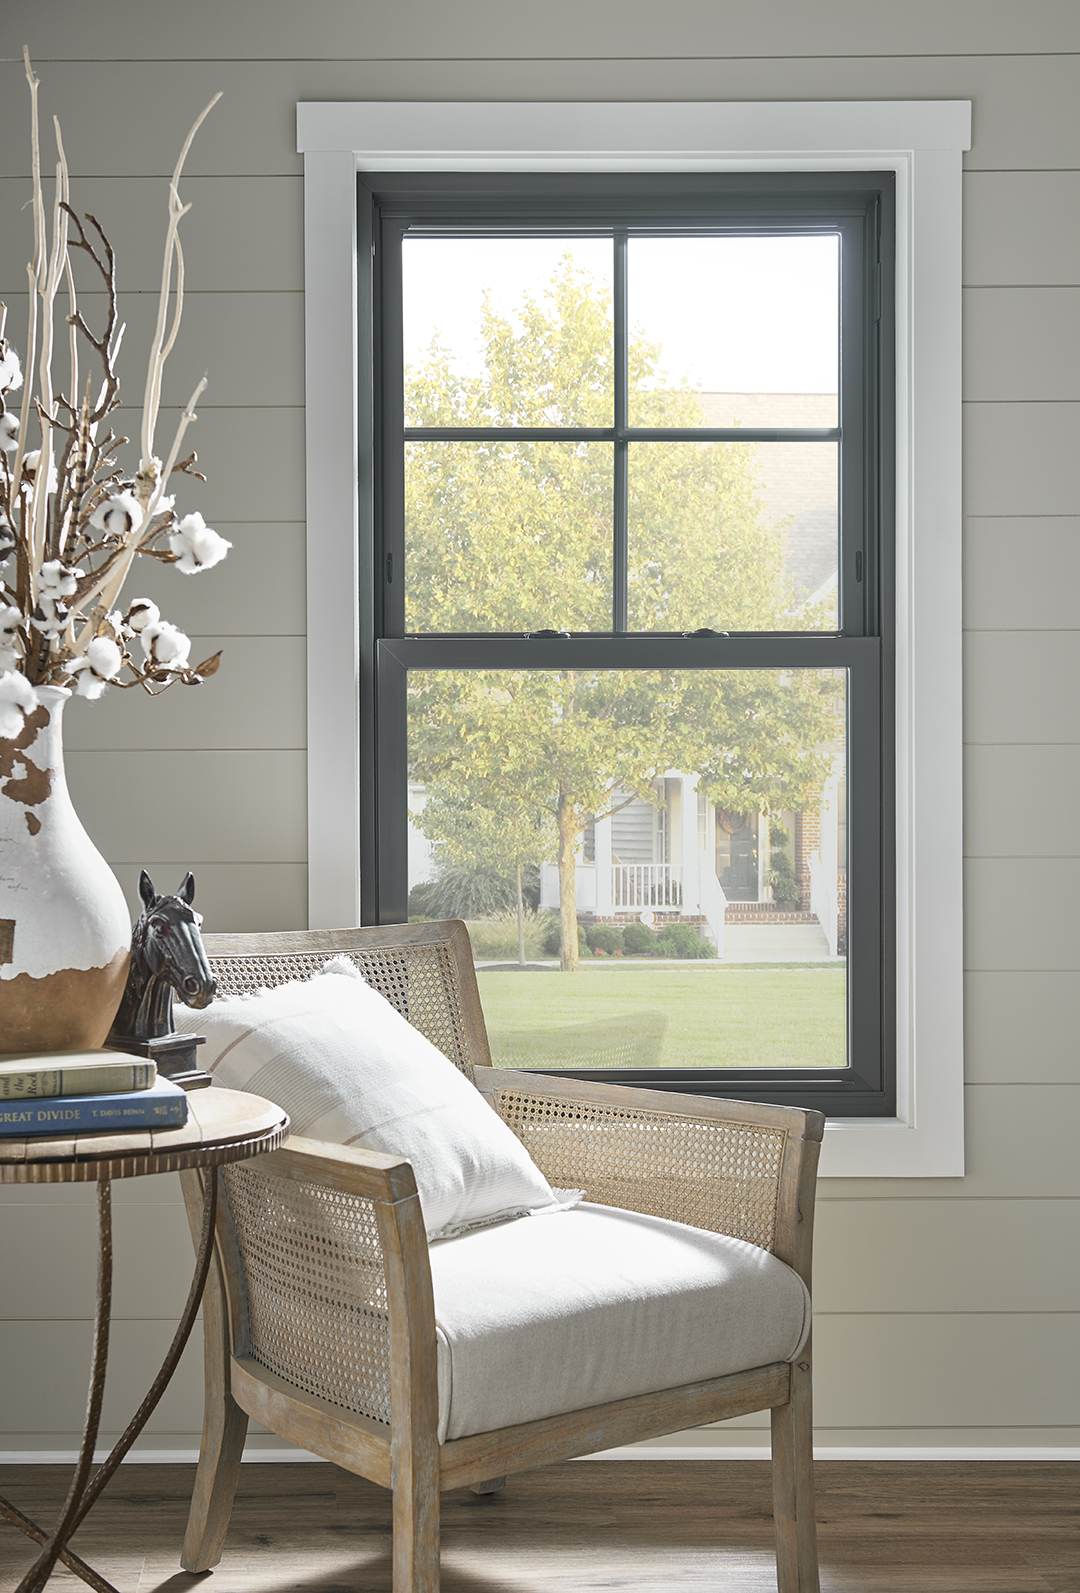 A double hung style window in a house.